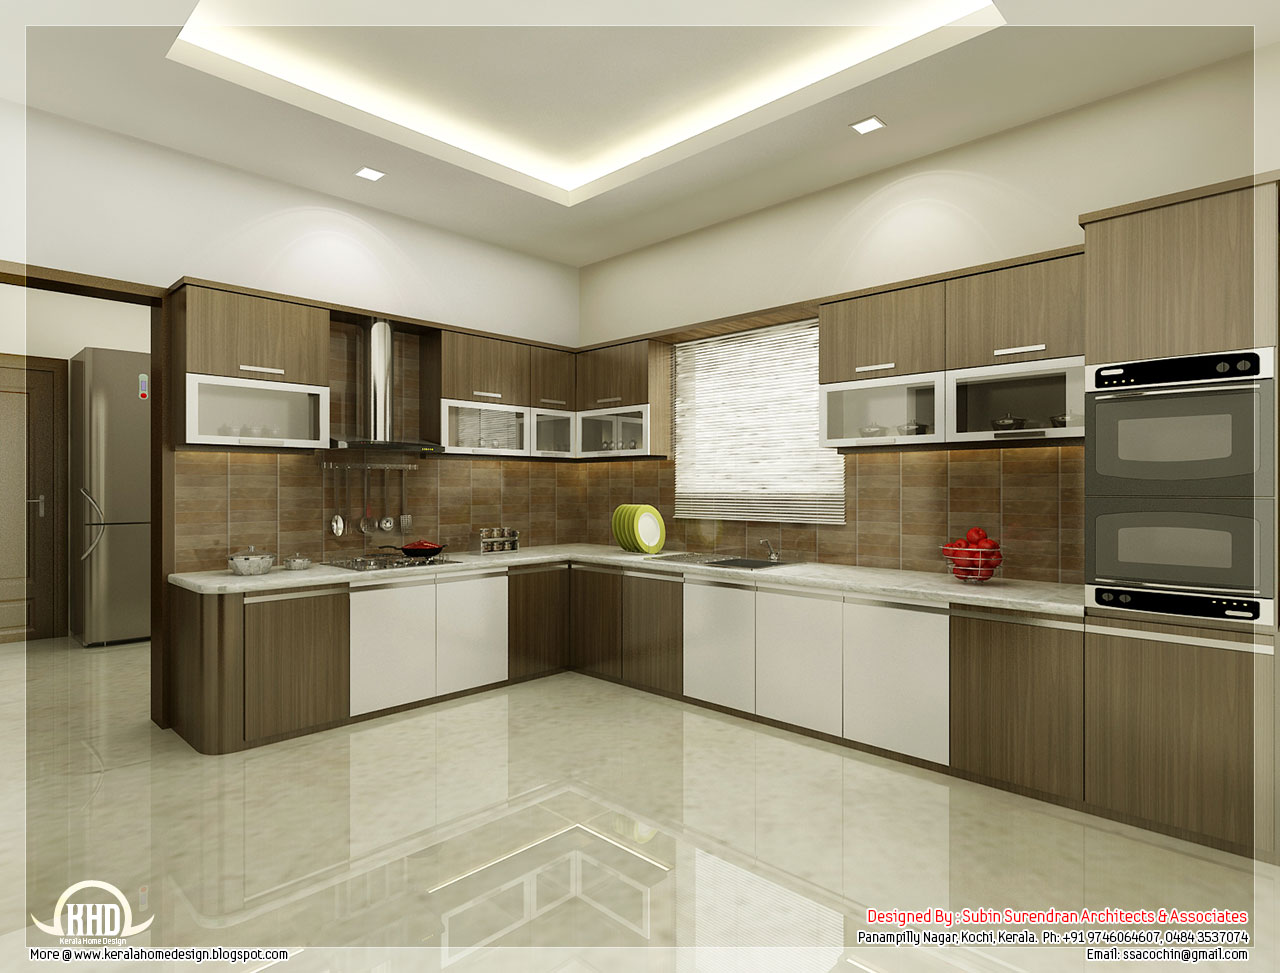 dining and kitchen interior kitchen and dining interiors kerala home design and floor plans - Home Interior Design India Photos